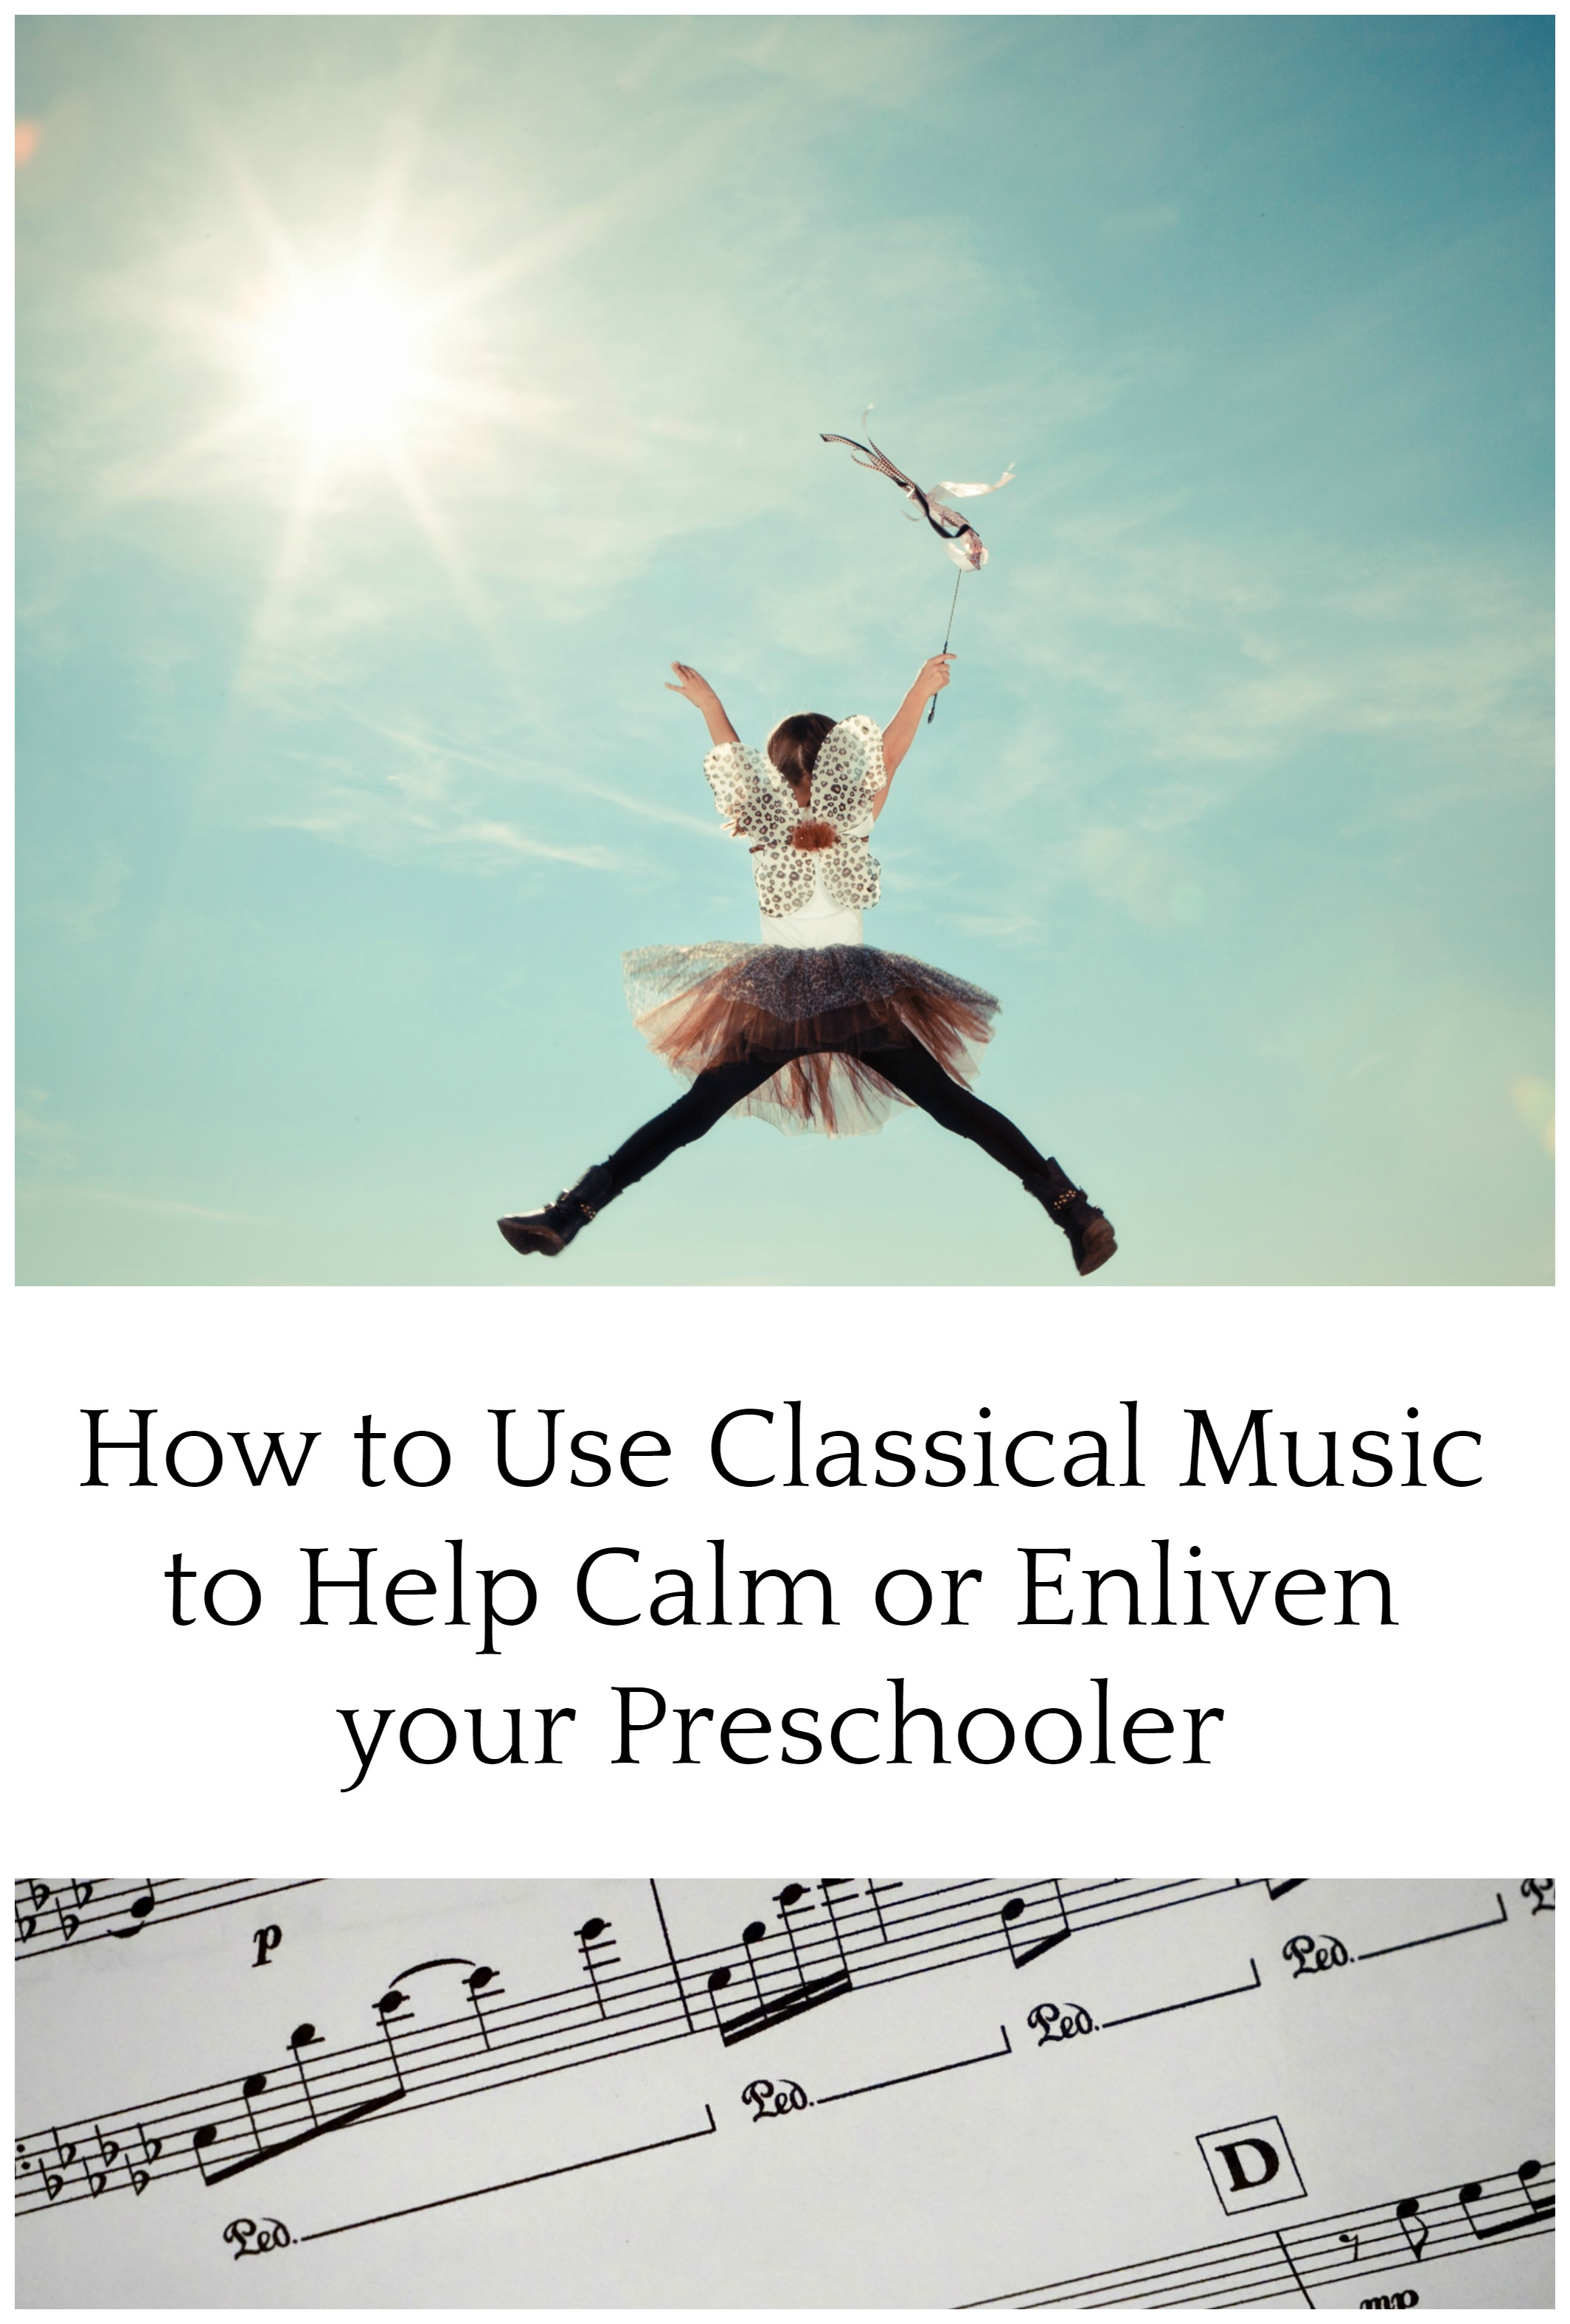 Using Classical Music for Preschool Children